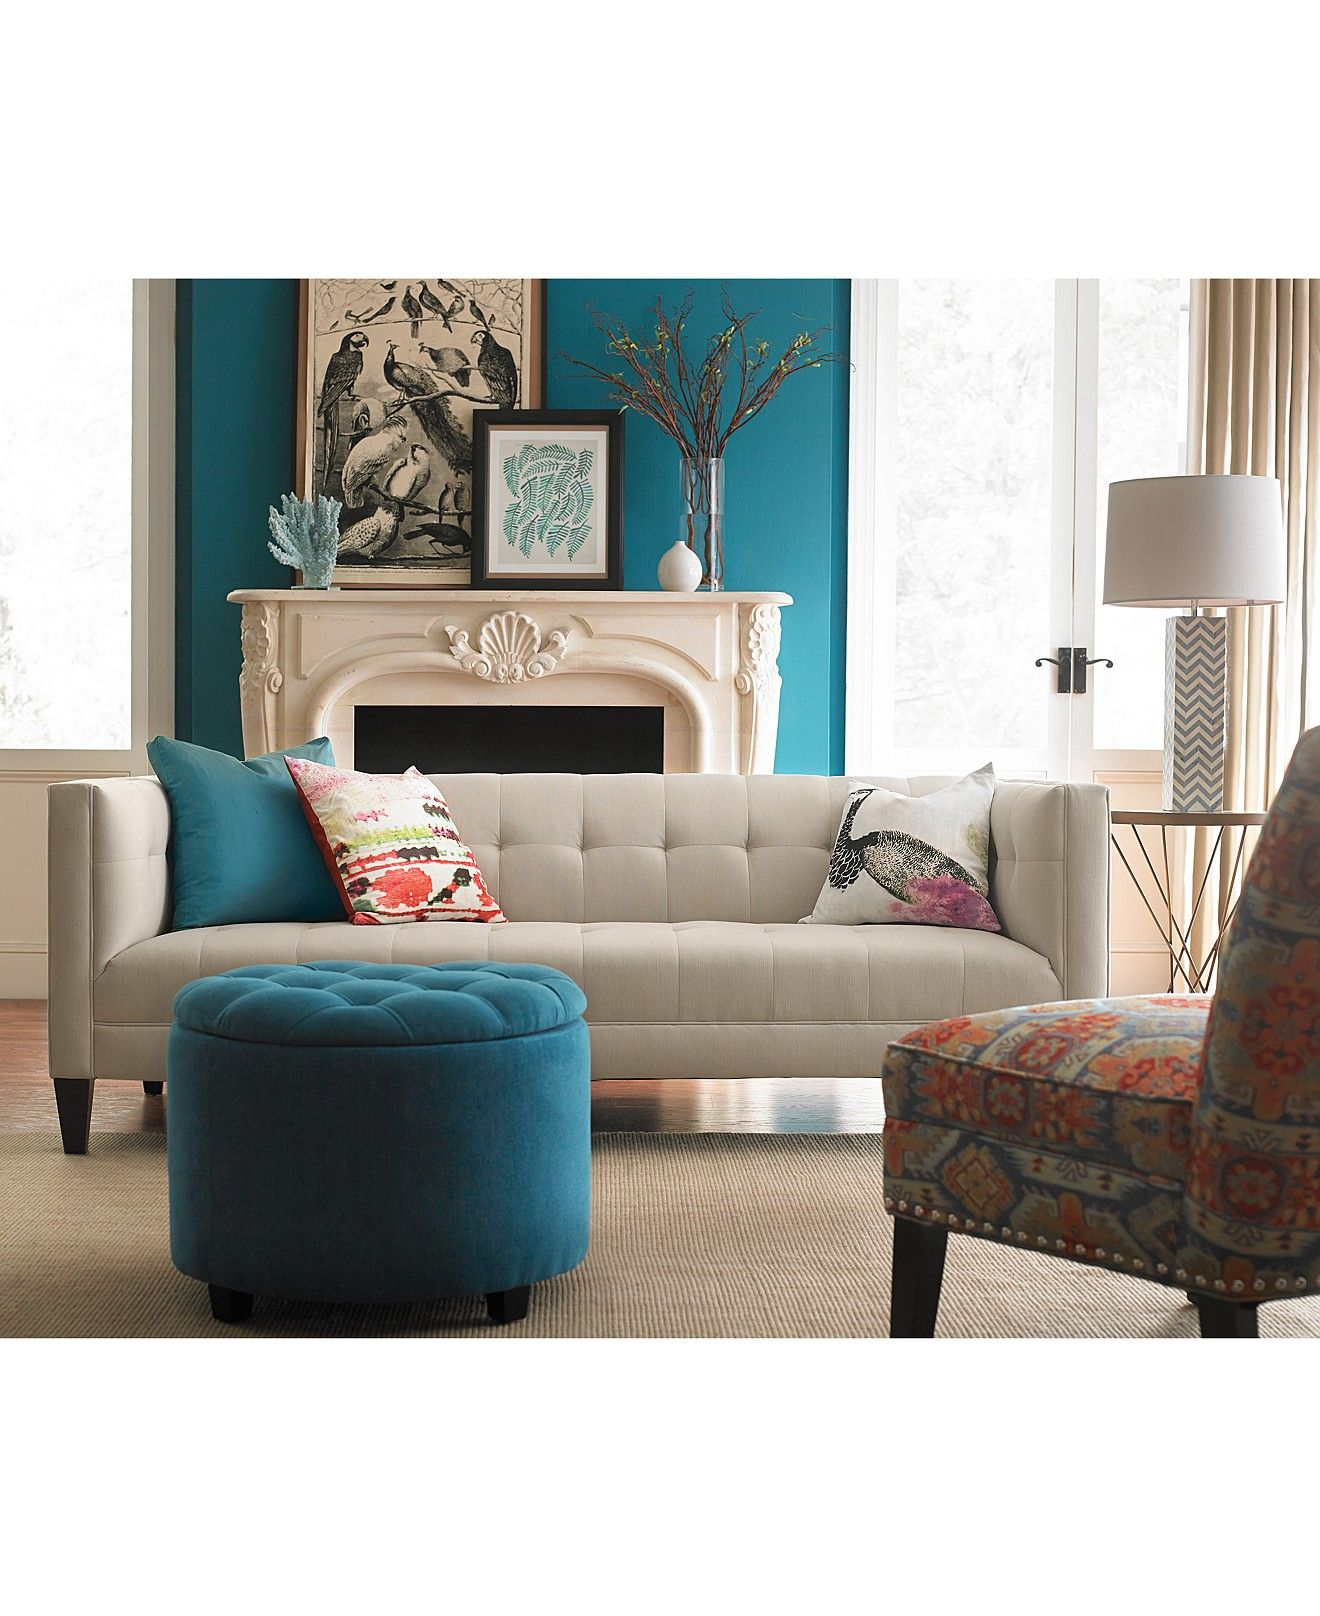 briel tufted tight back seat sofa collection furniture macy s rh pinterest com